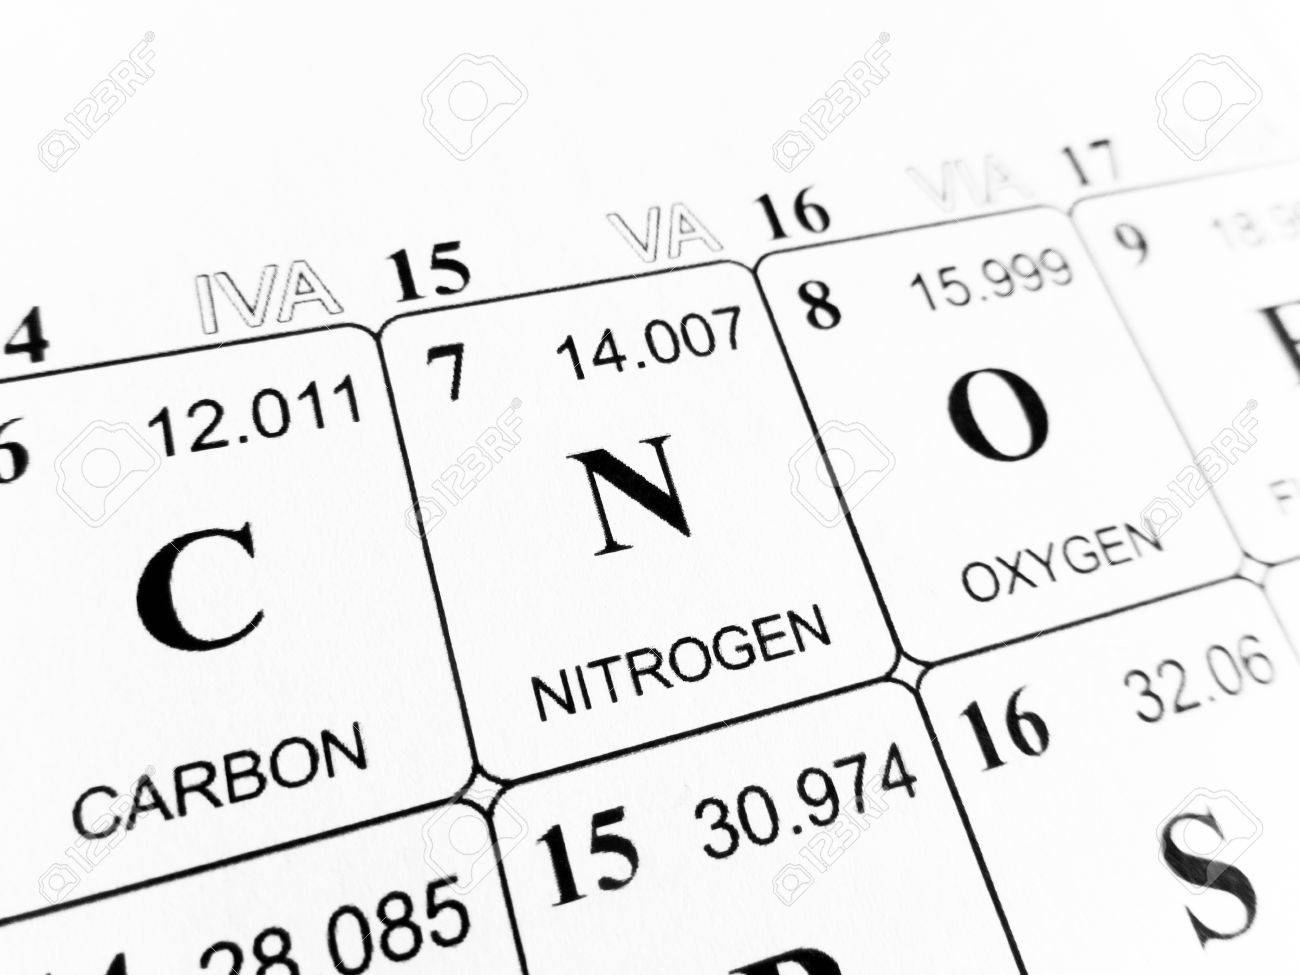 Oxygen element periodic table gallery periodic table images nitrogen element periodic table choice image periodic table images periodic table of nitrogen images periodic table gamestrikefo Images